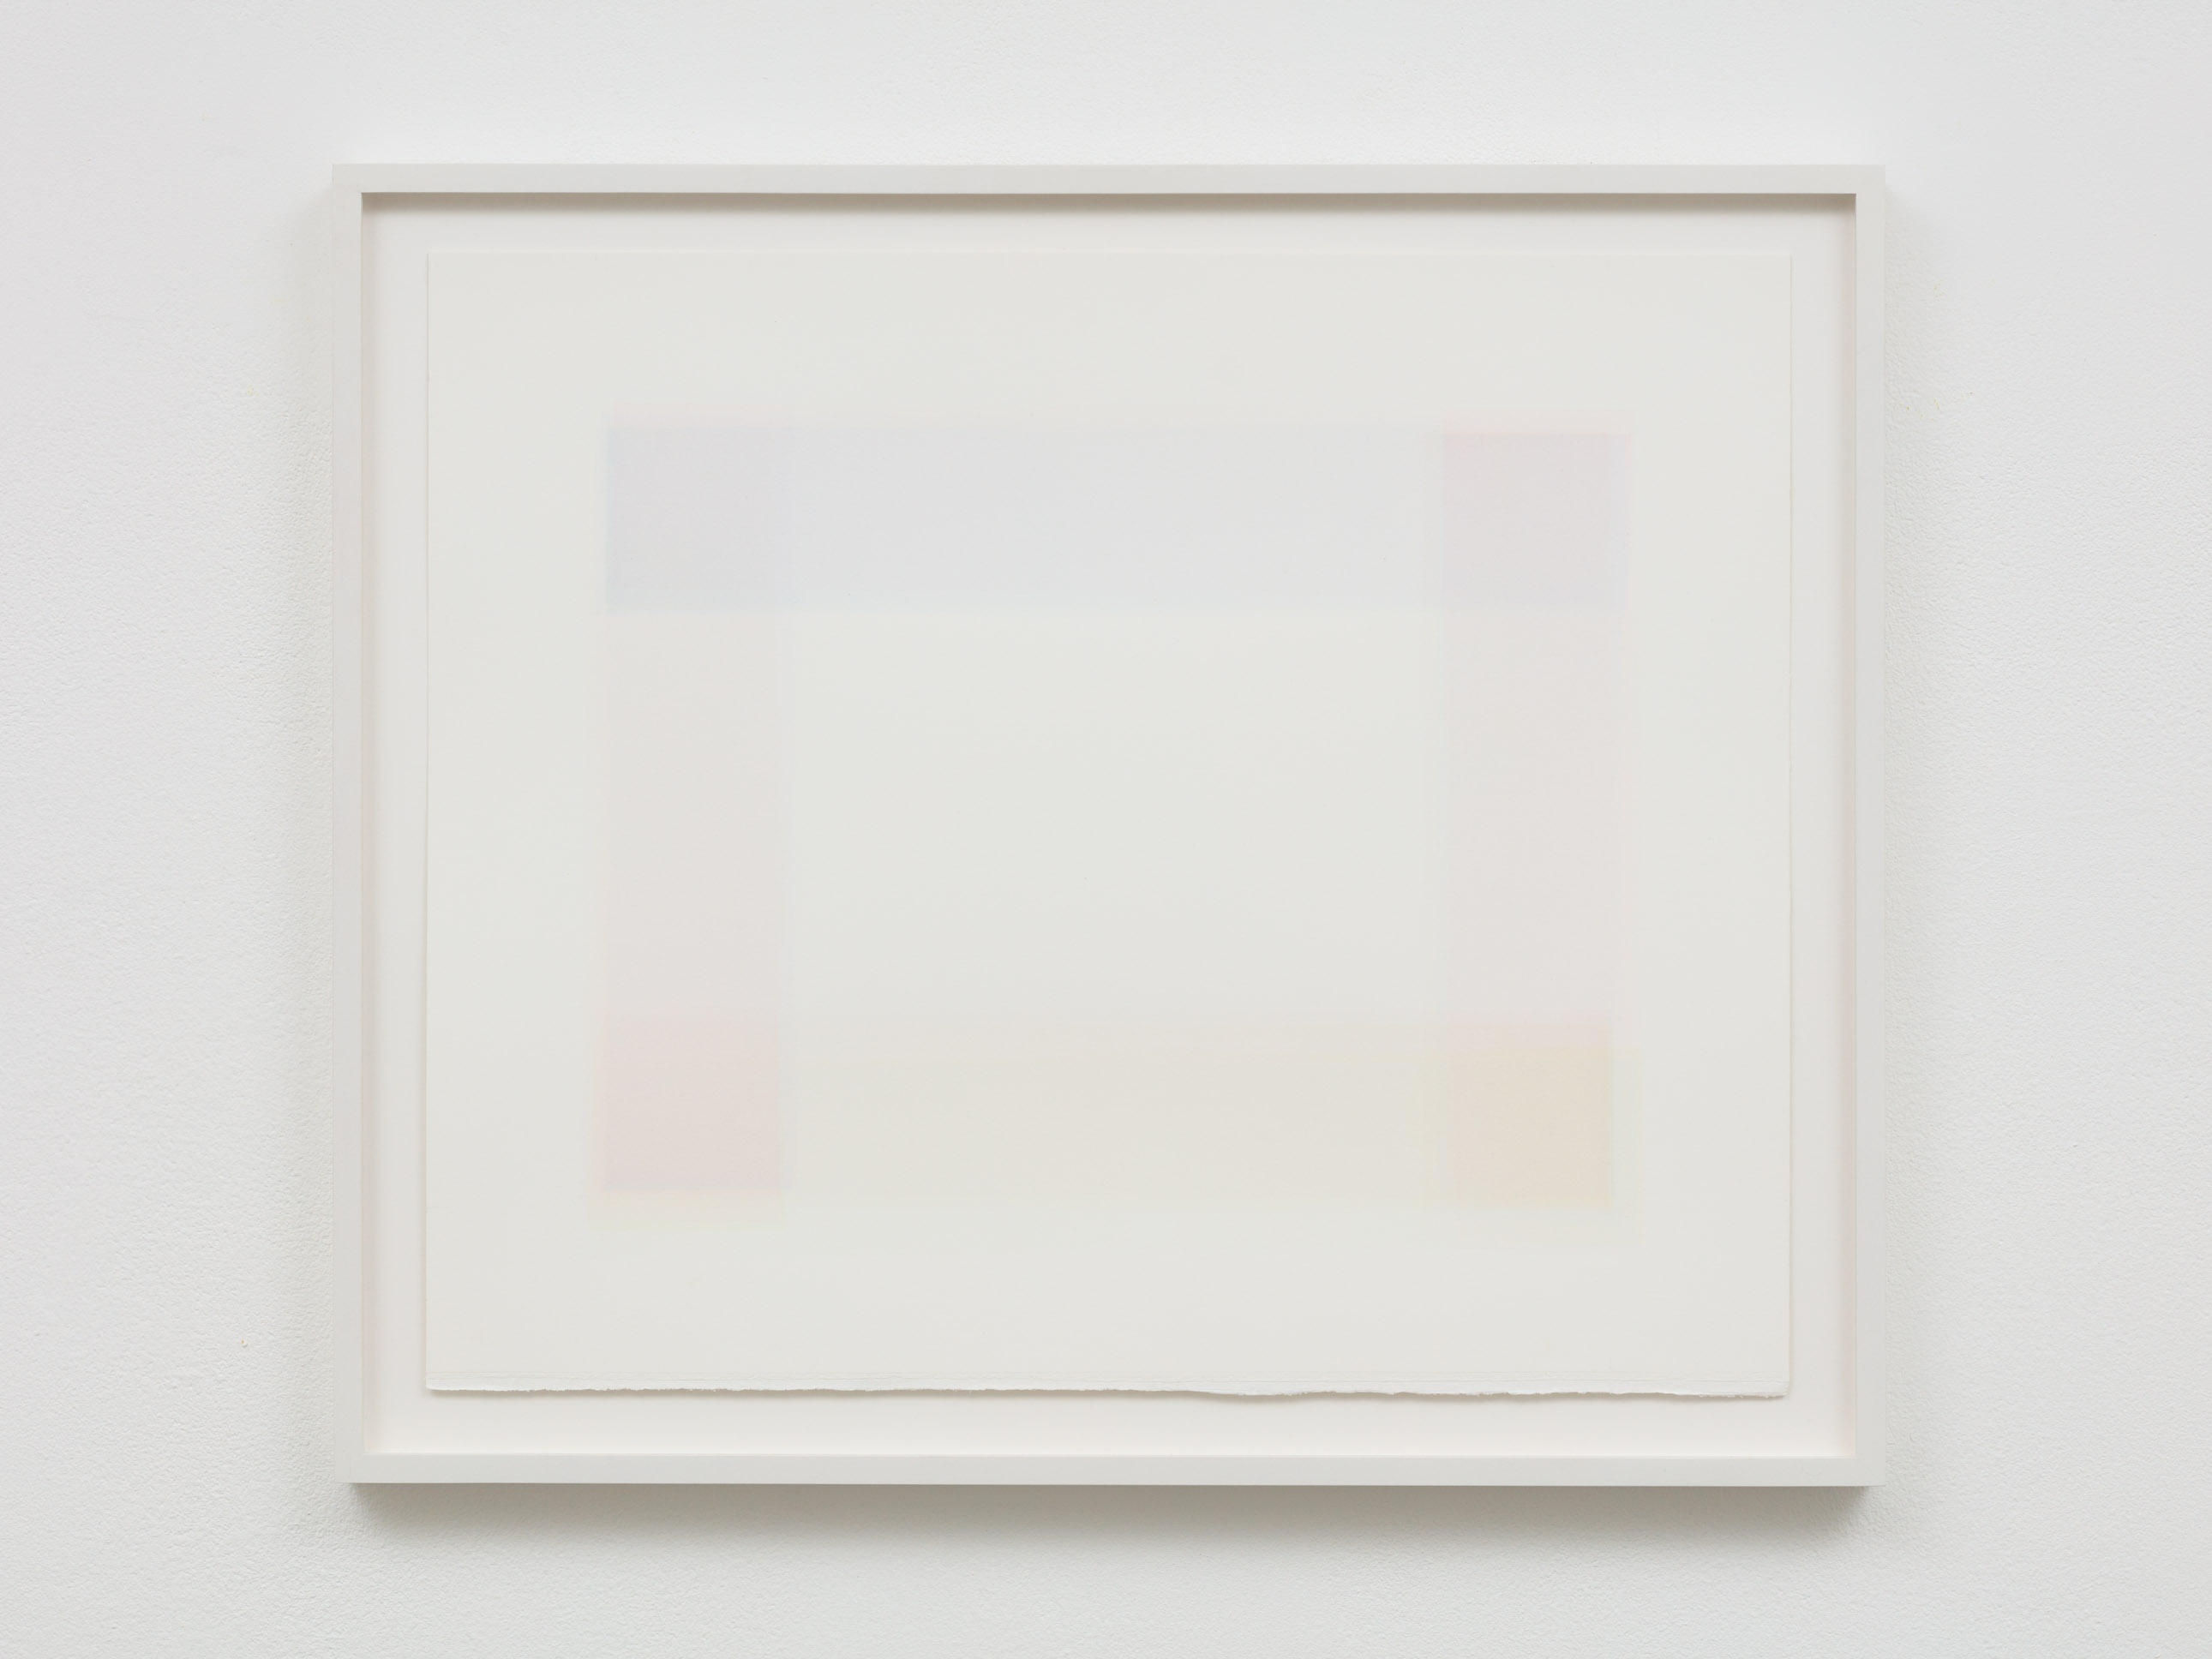 Tom Chamberlain, Ohne Titel, 2015, Watercolor on paper, 44,5 x 52,2 x 3,2 cm (framed), courtesy of Laure Genillard gallery, Image credits: Plastiques